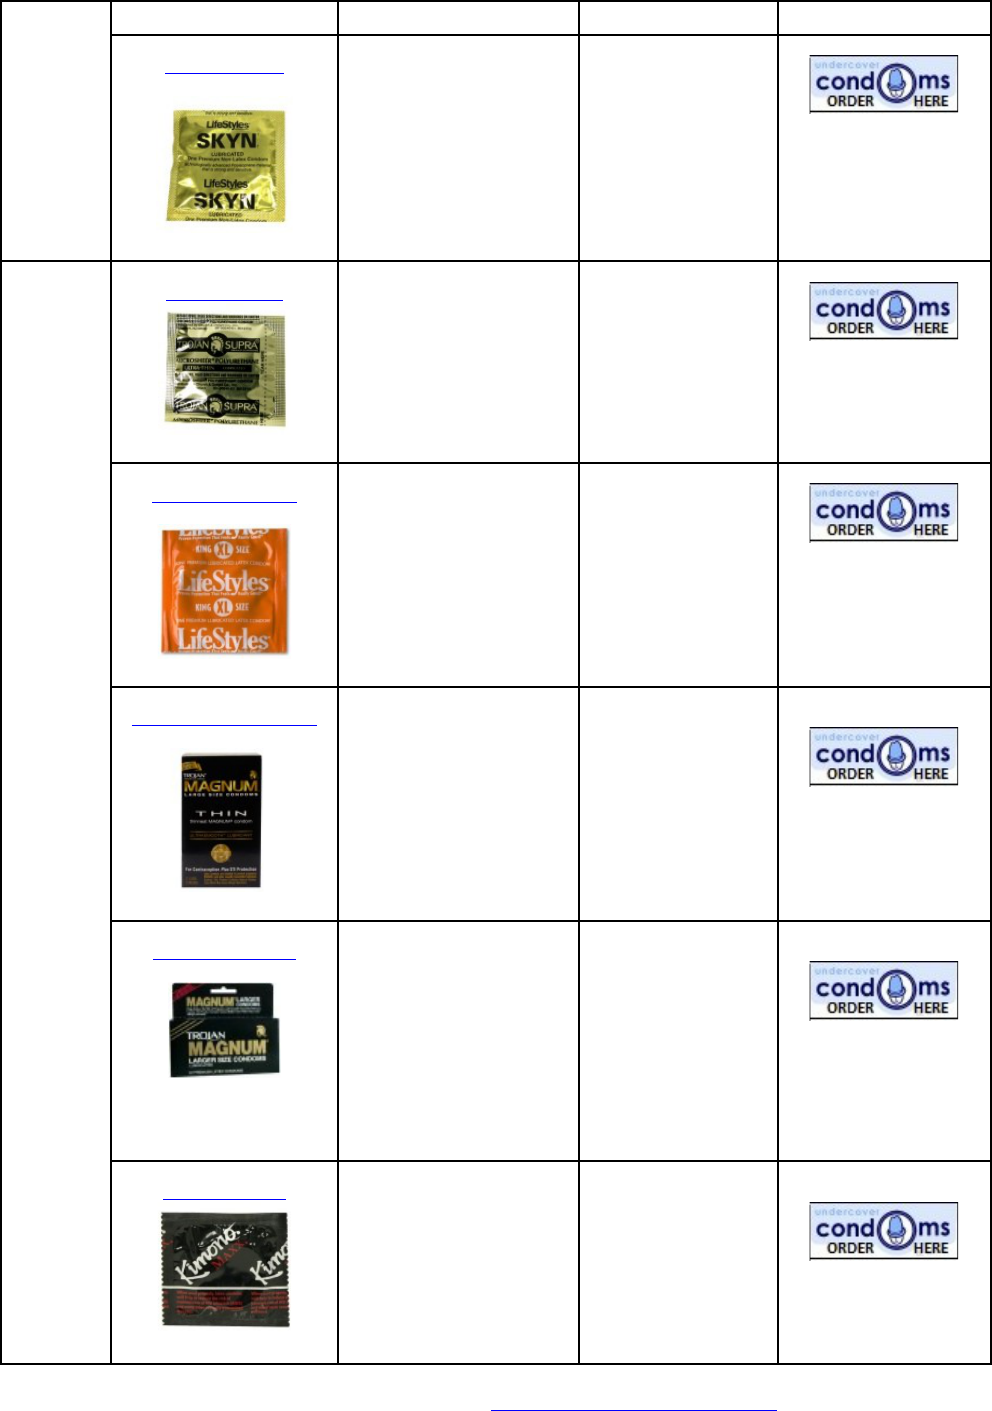 Download Condom Size Chart 1 for Free | Page 4 - TidyTemplates